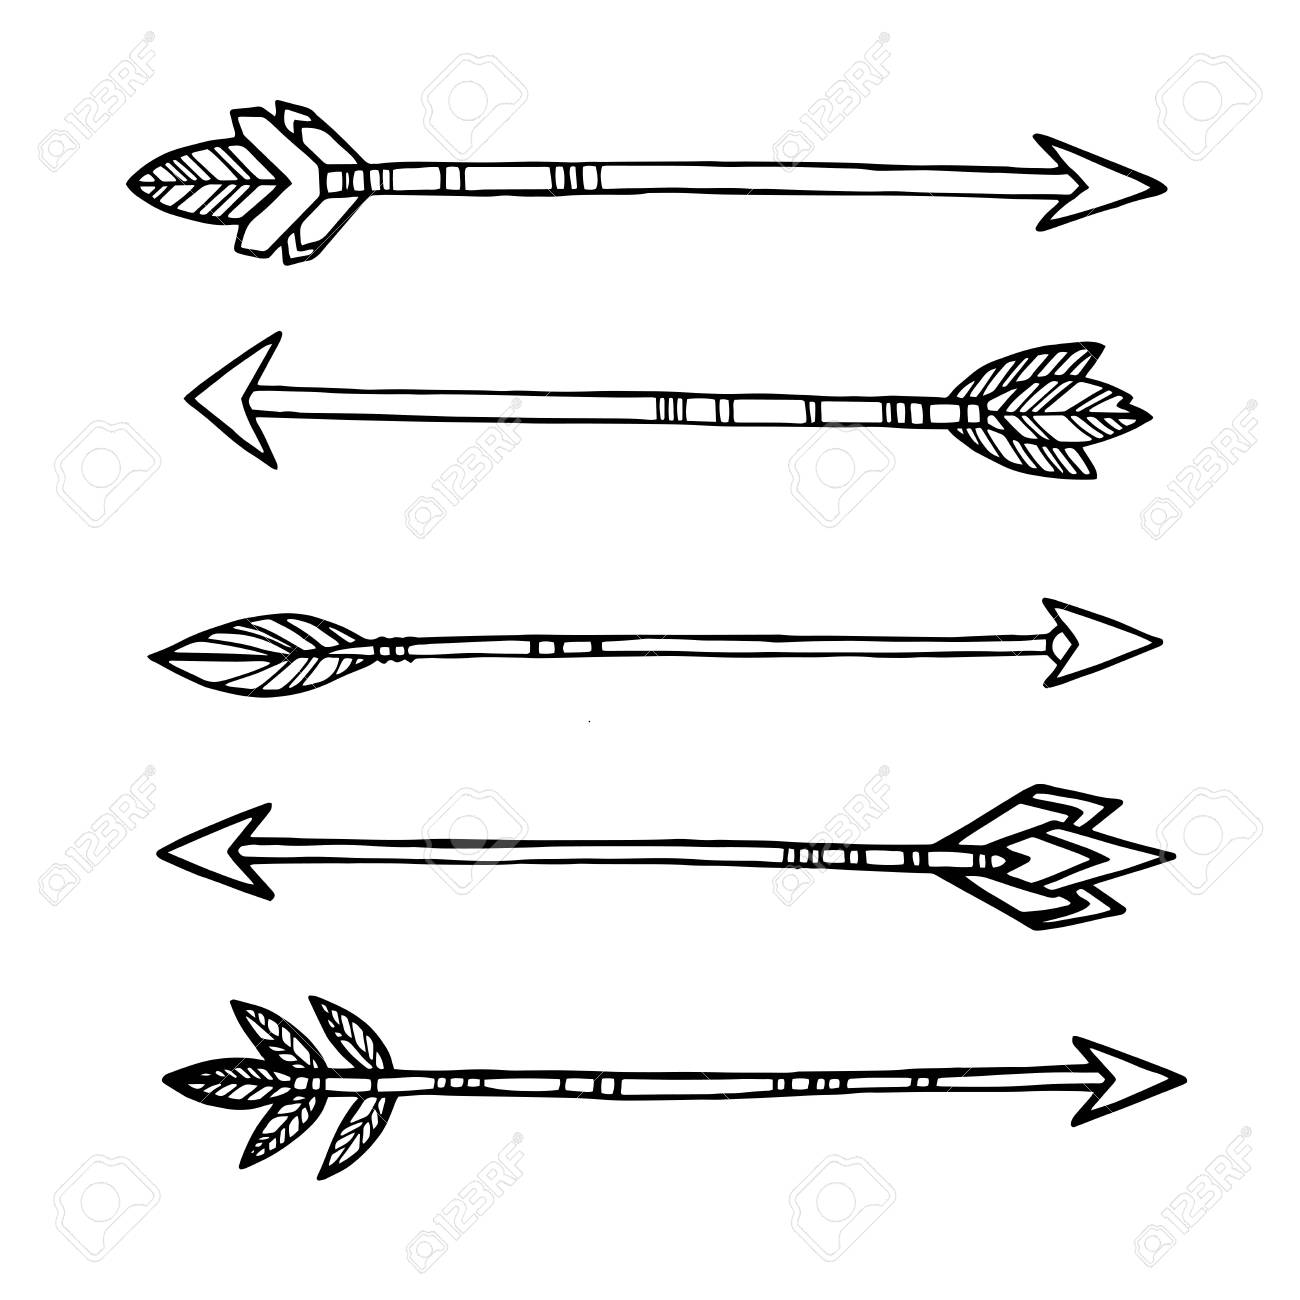 Tribal indian arrows  hand drawn decorative elements in boho